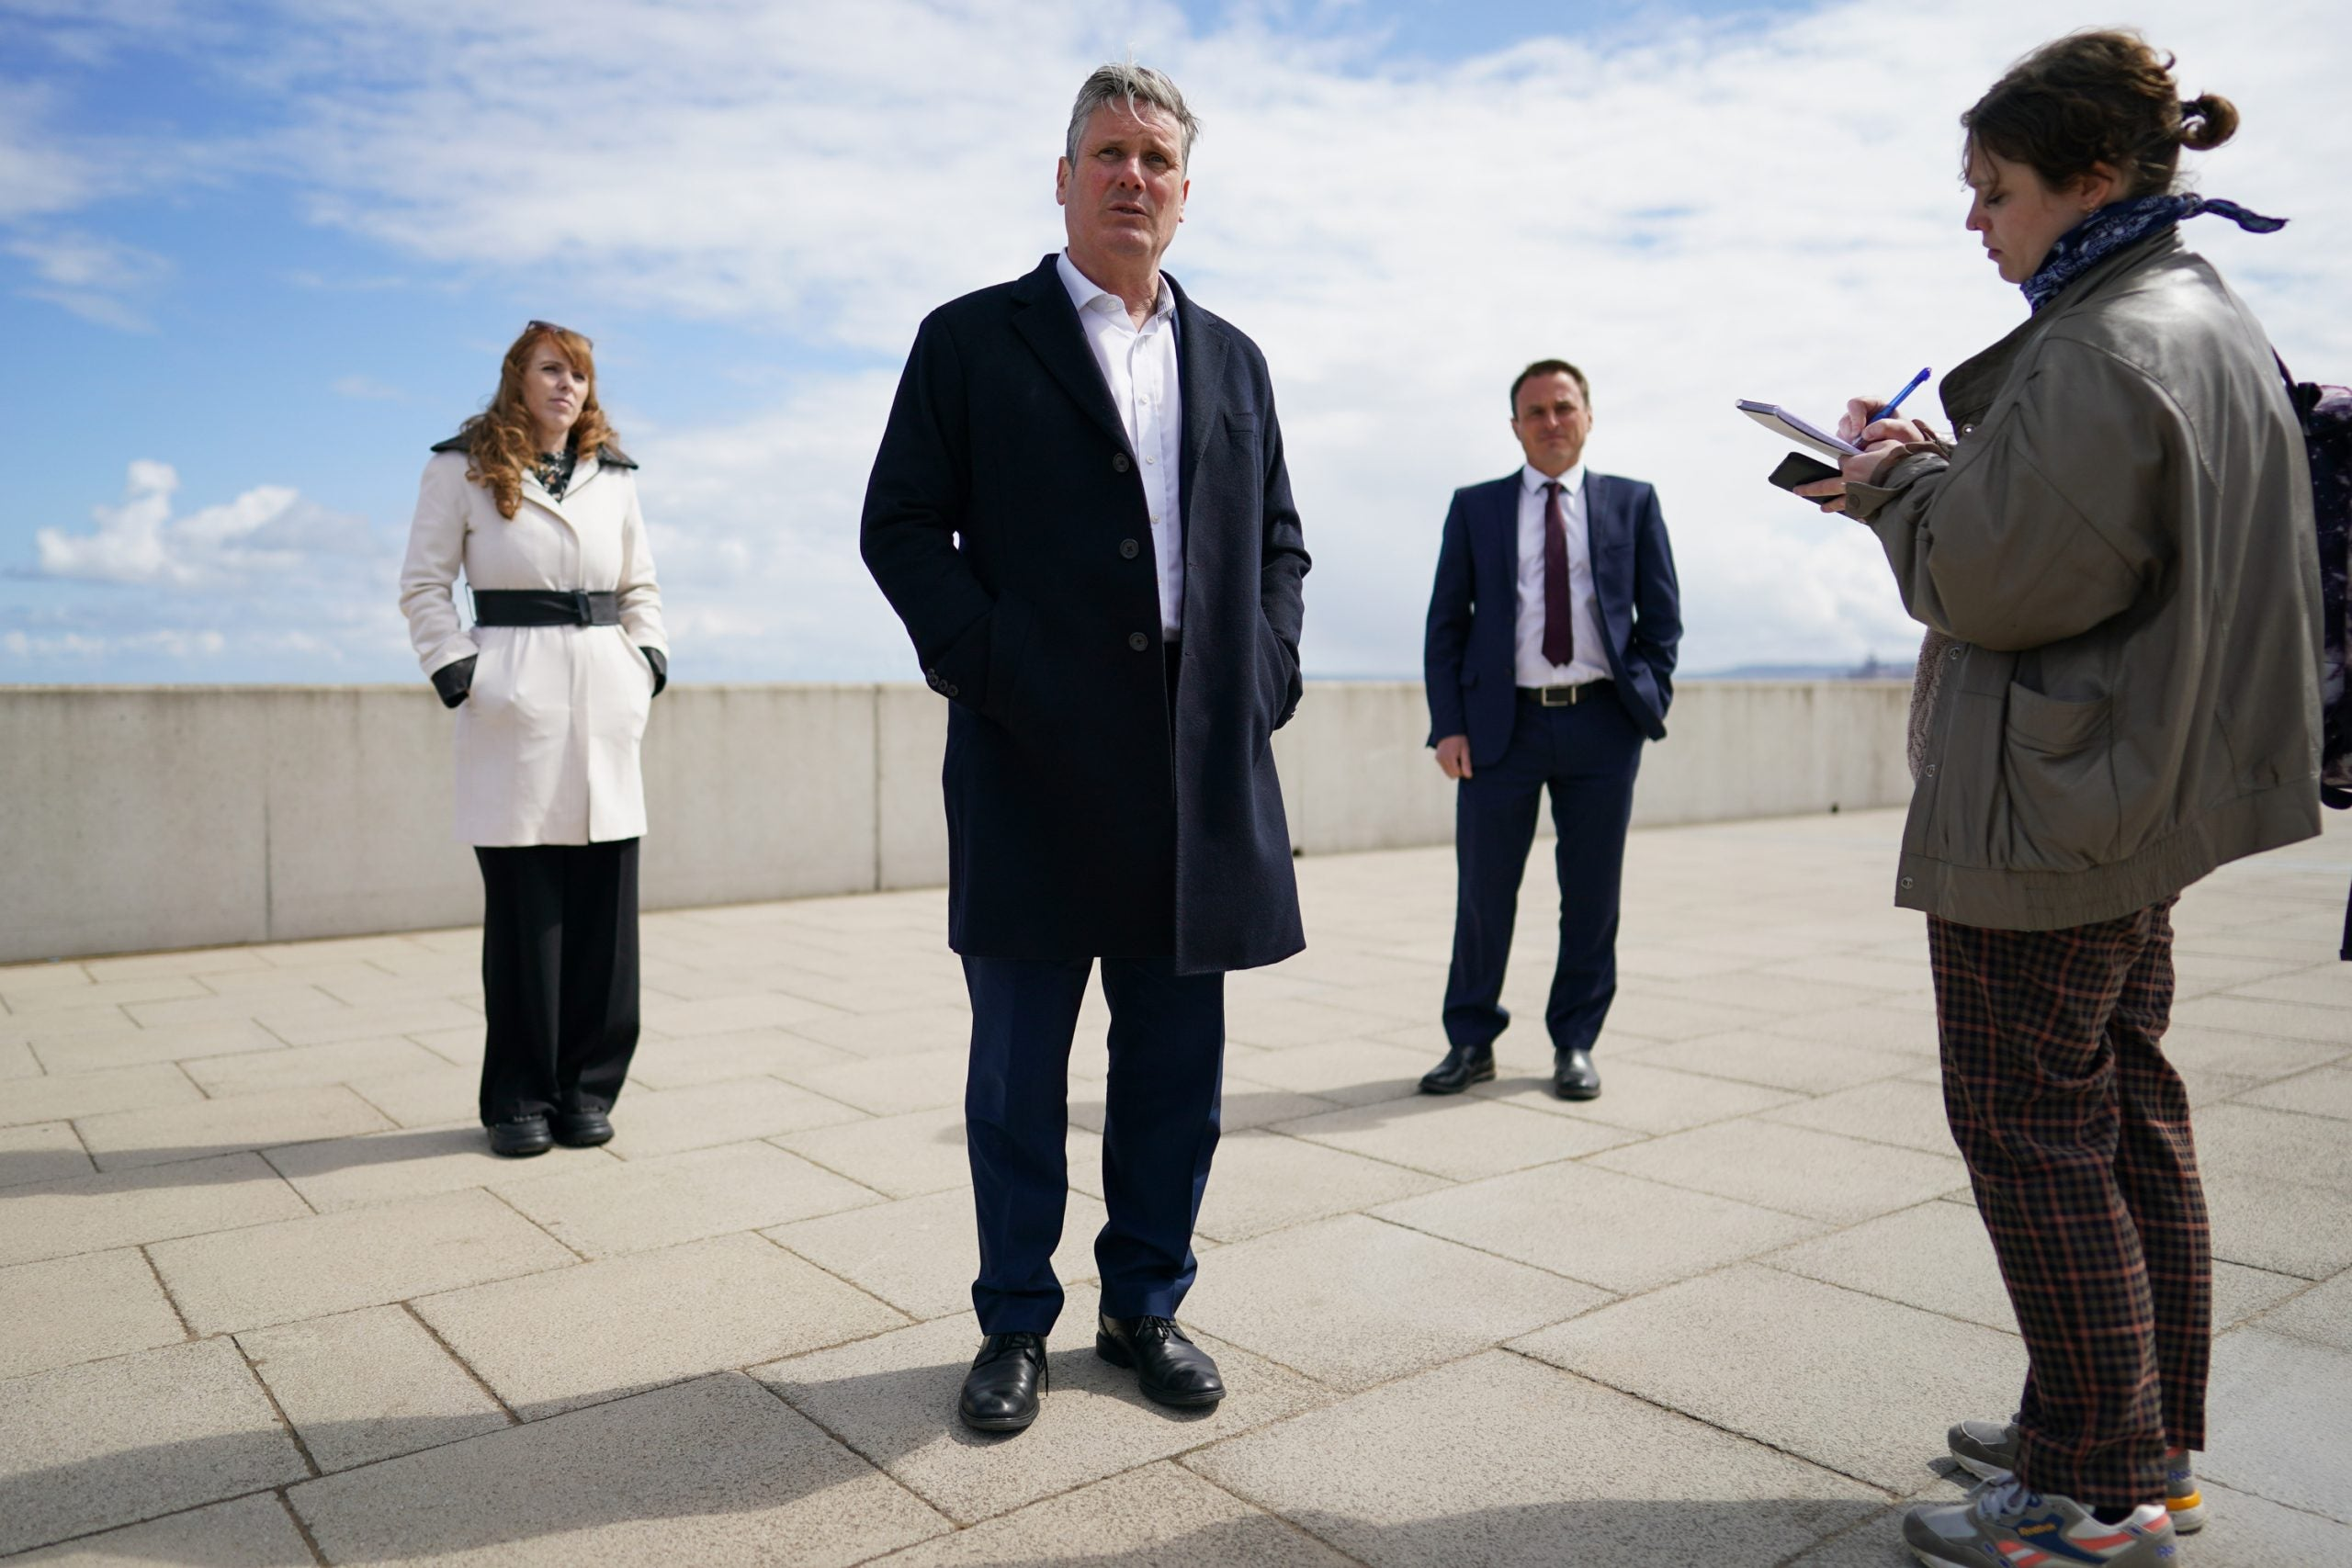 The politics of Hartlepool, a candidate on Mars and the PM's penury